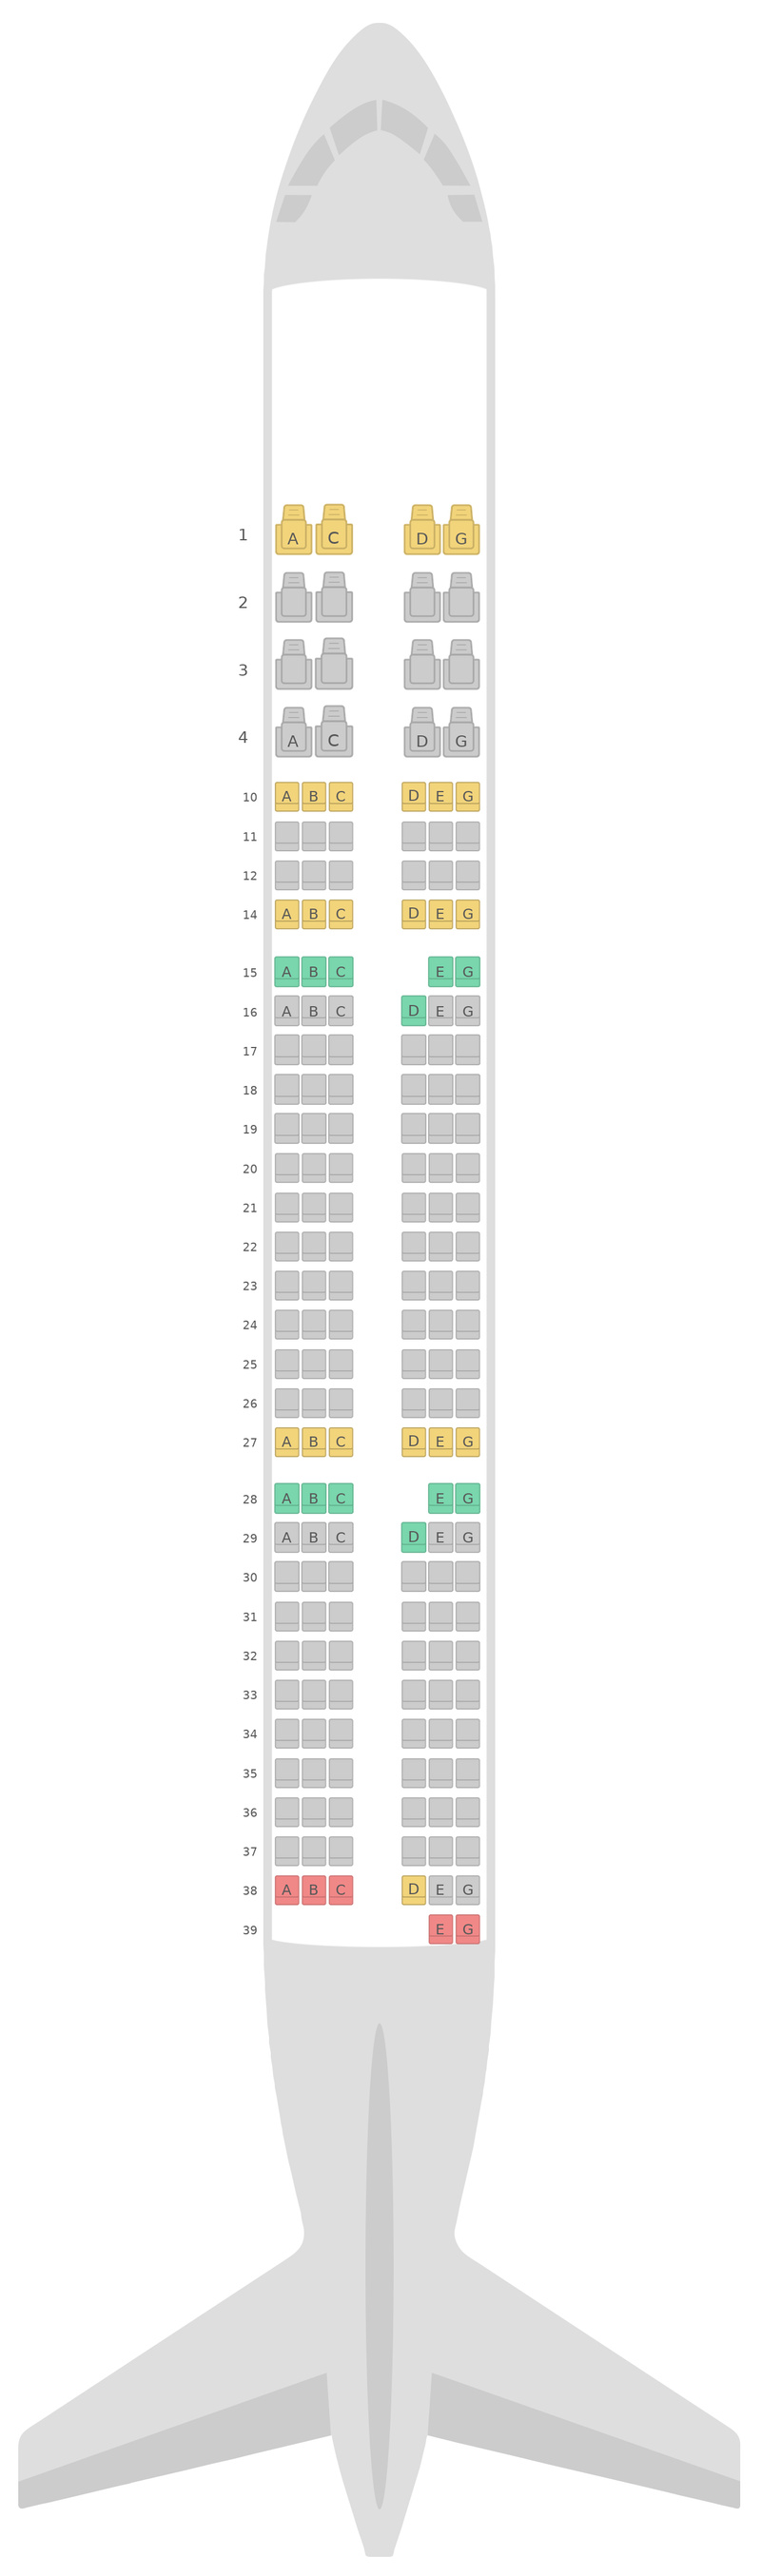 Seat Map Airbus A321 v2 Vietnam Airlines